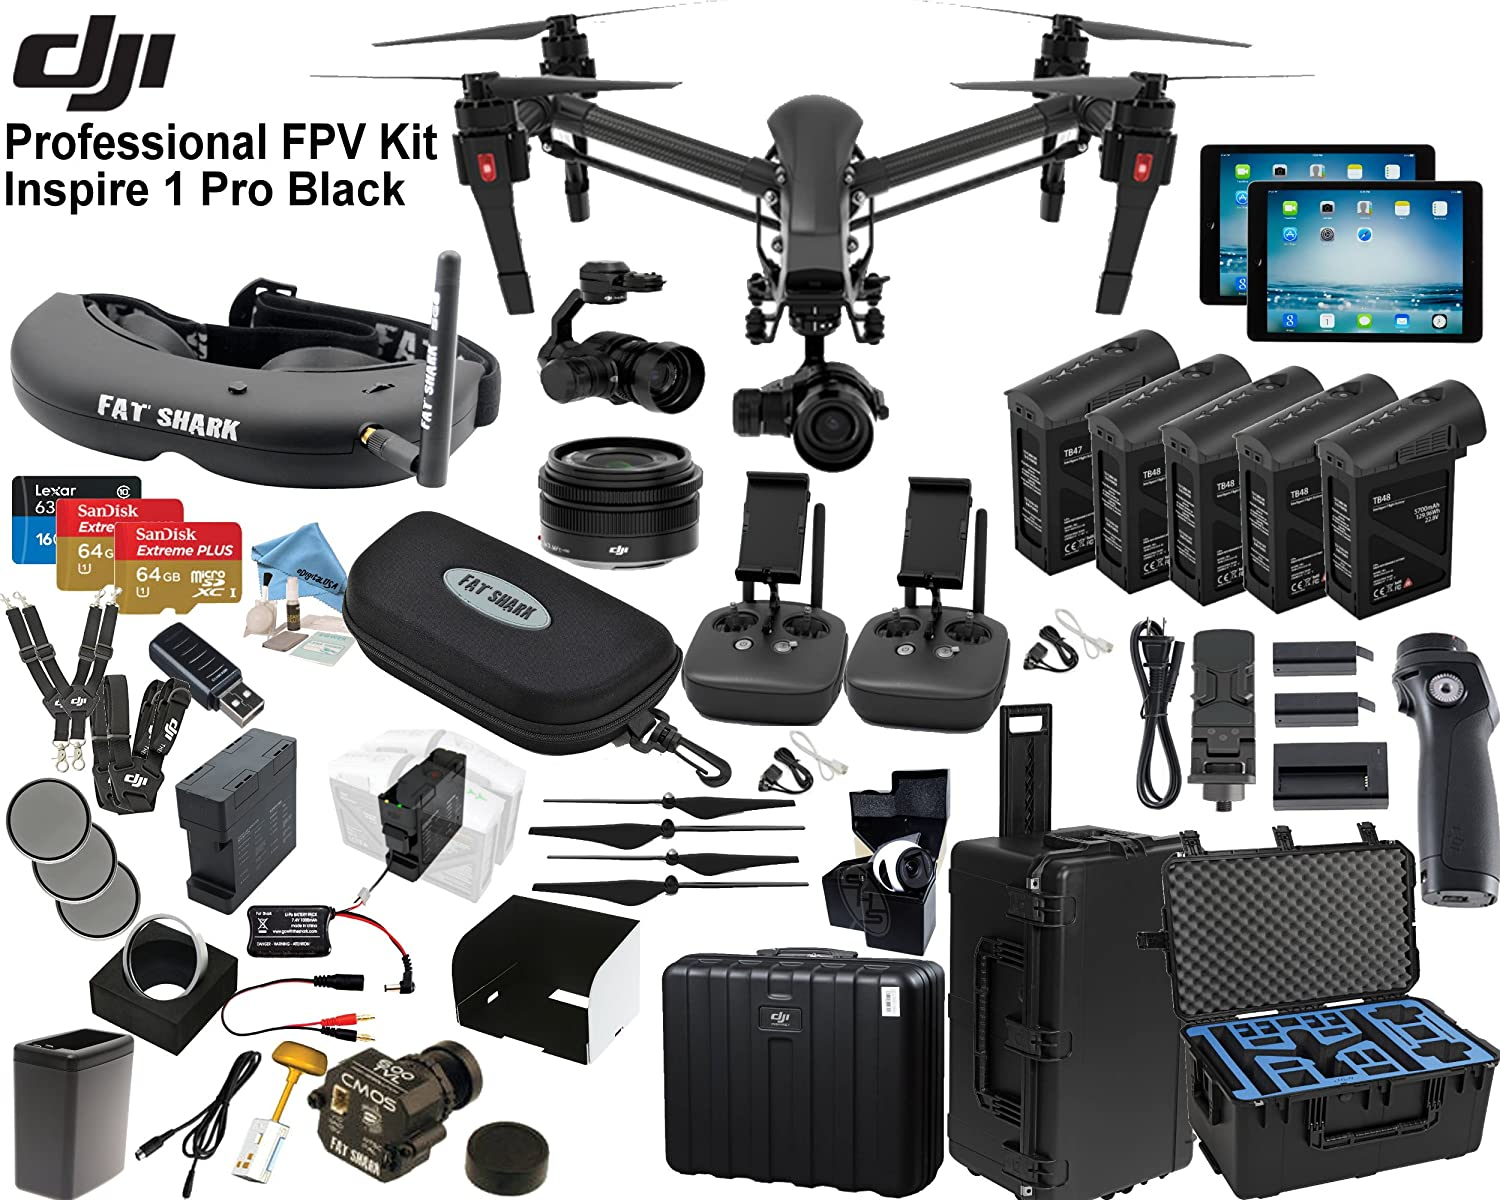 Dji Inspire 1 Pro Quadcopter Black Edition With Fpv Zenmuse X5 4k 3 Axis Professional Eagle Eye Package Includes 2 Controllers Ipads Fatshark Attitude V3 Goggles